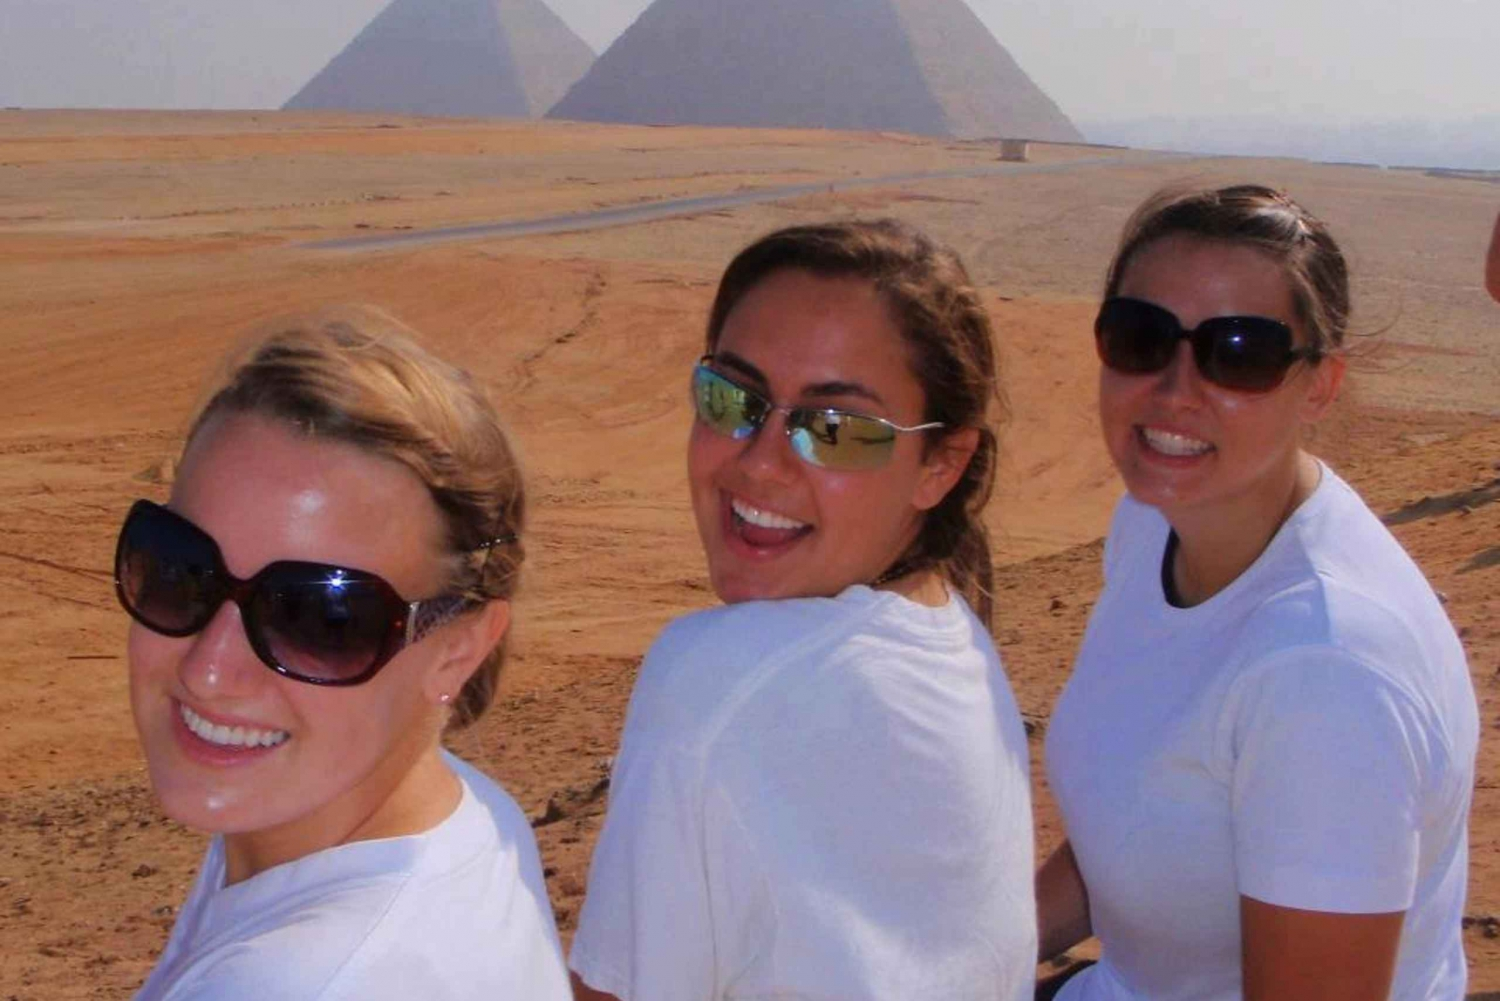 Giza Pyramids & Egyptian Museum from Hurghada by Bus